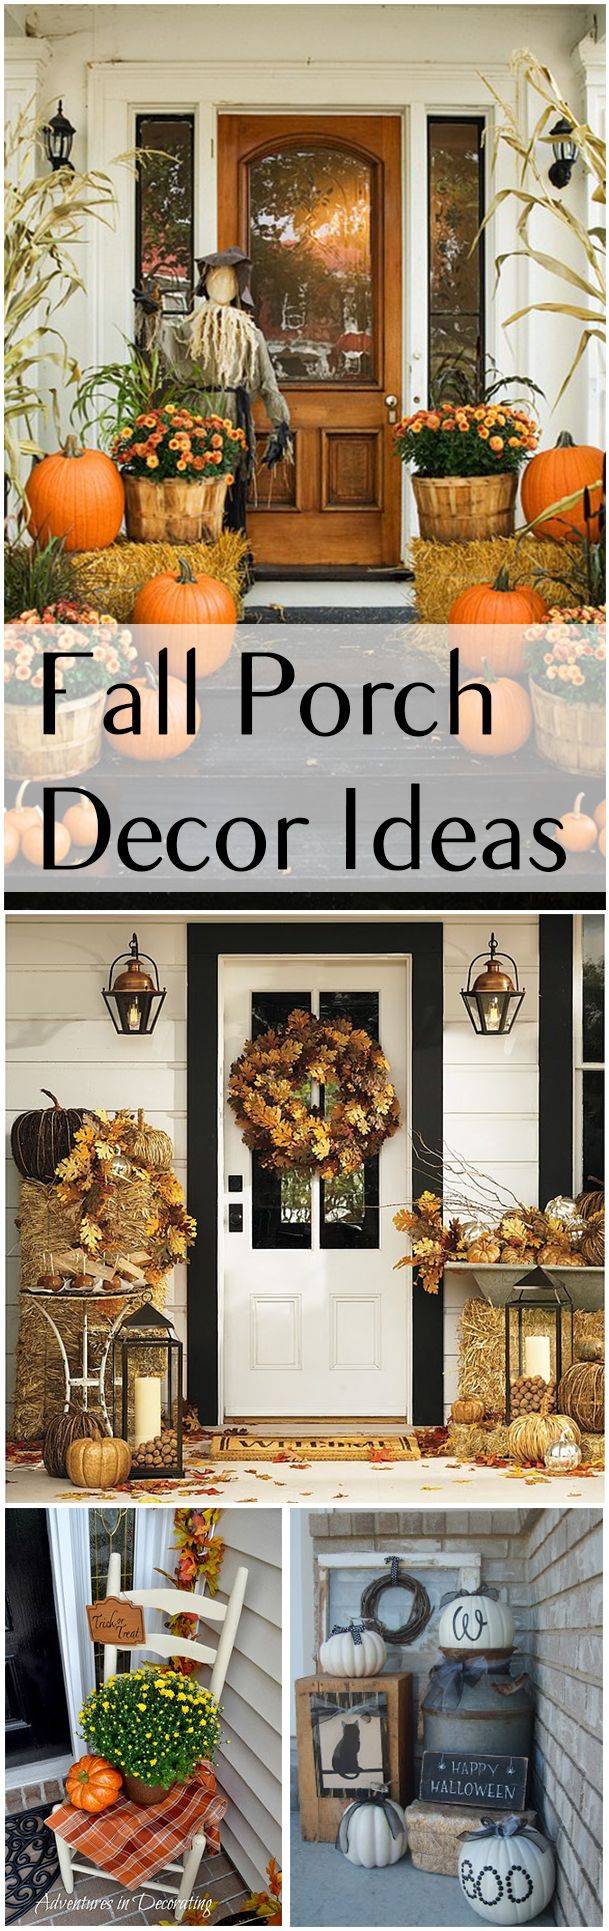 Fall Porch Decor Ideas Part 54